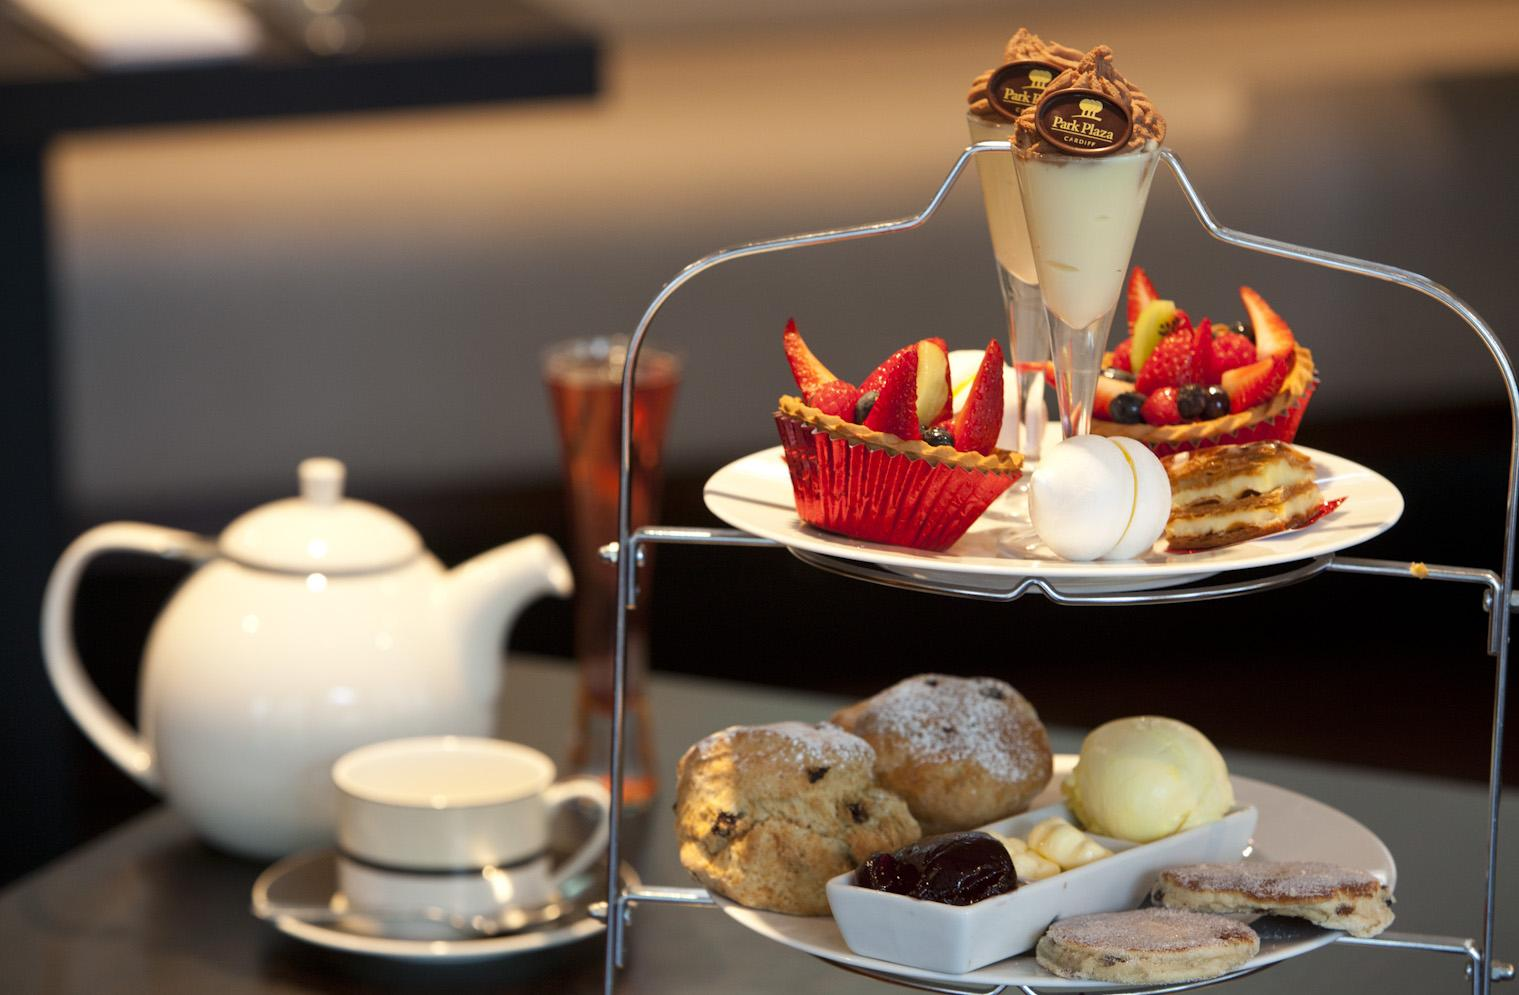 The only thing better than Afternoon Tea is... Champagne Afternoon Tea! To book call 02920 11 11 03 http://t.co/hrVLLWuMAa